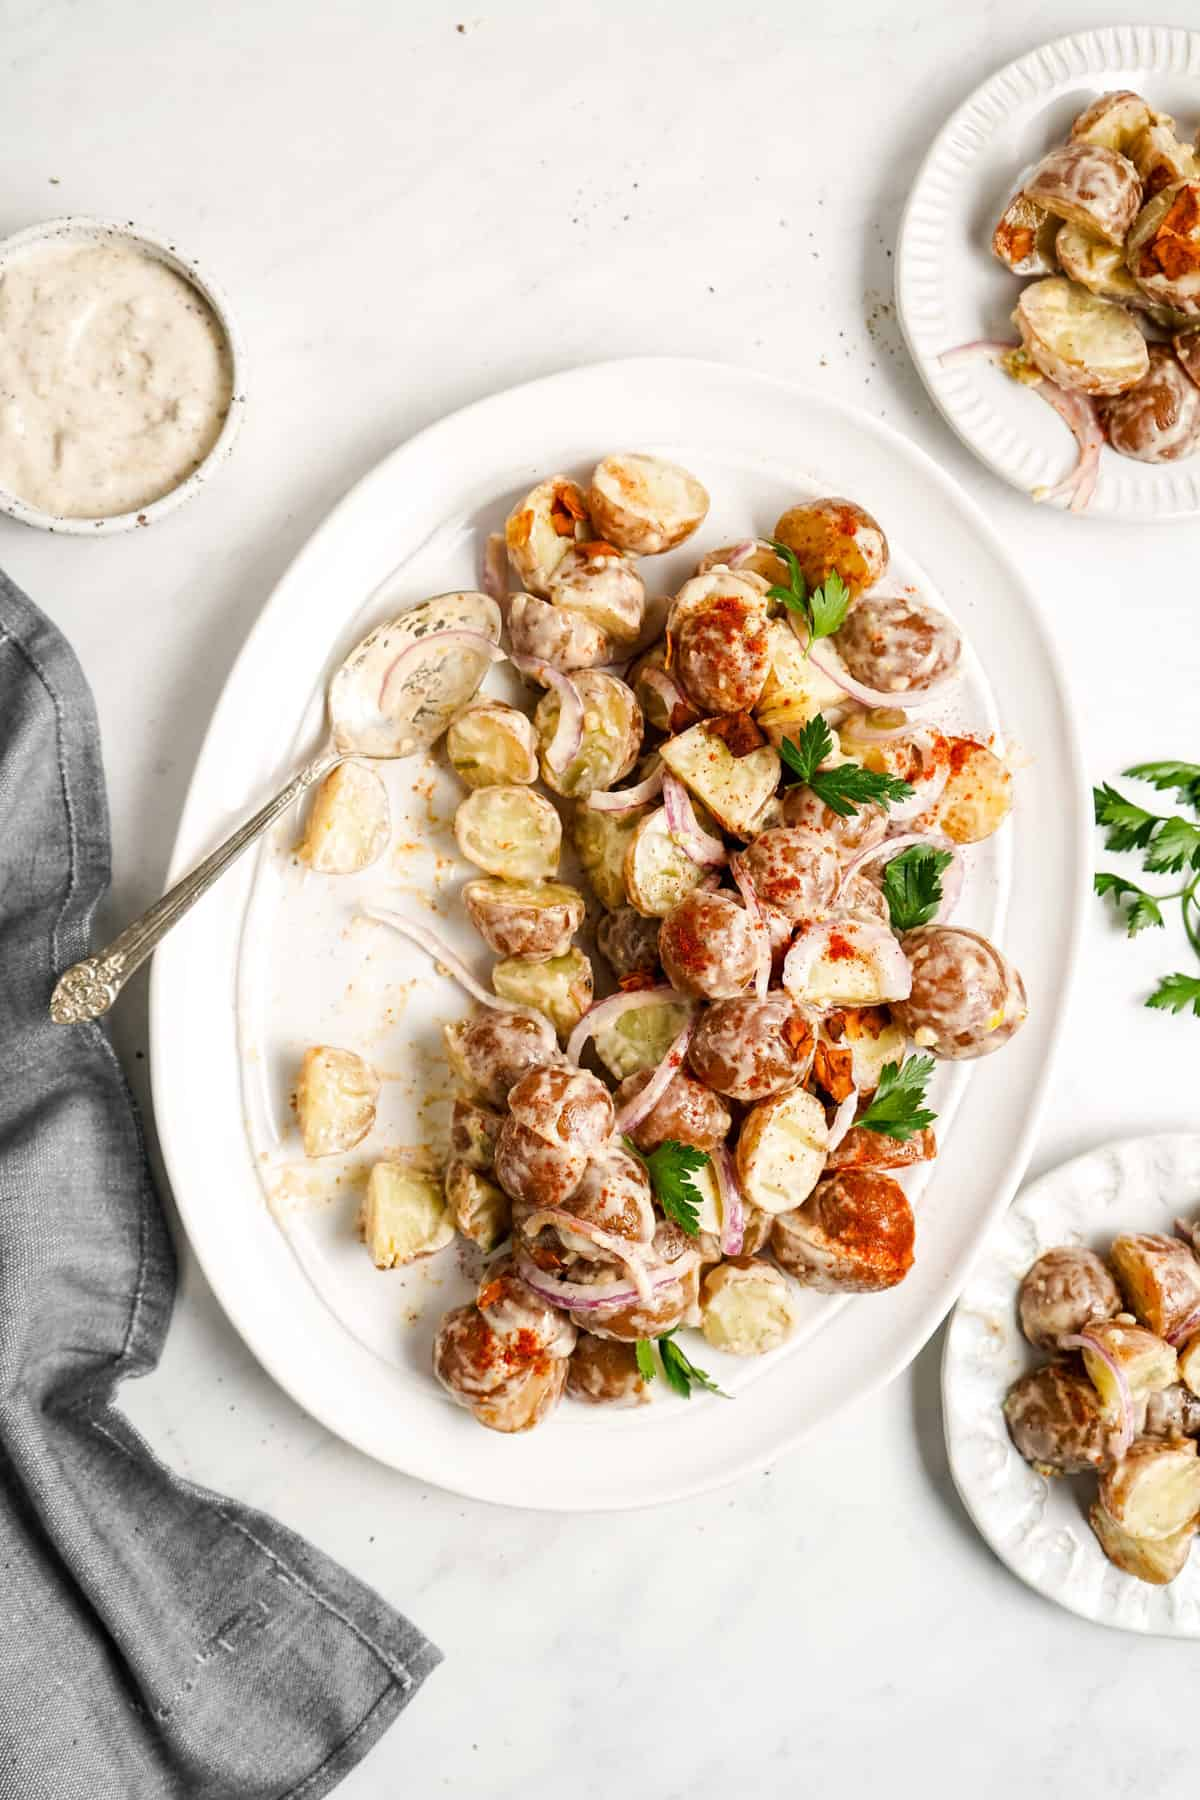 Potato salad with red onion and coconut bacon.